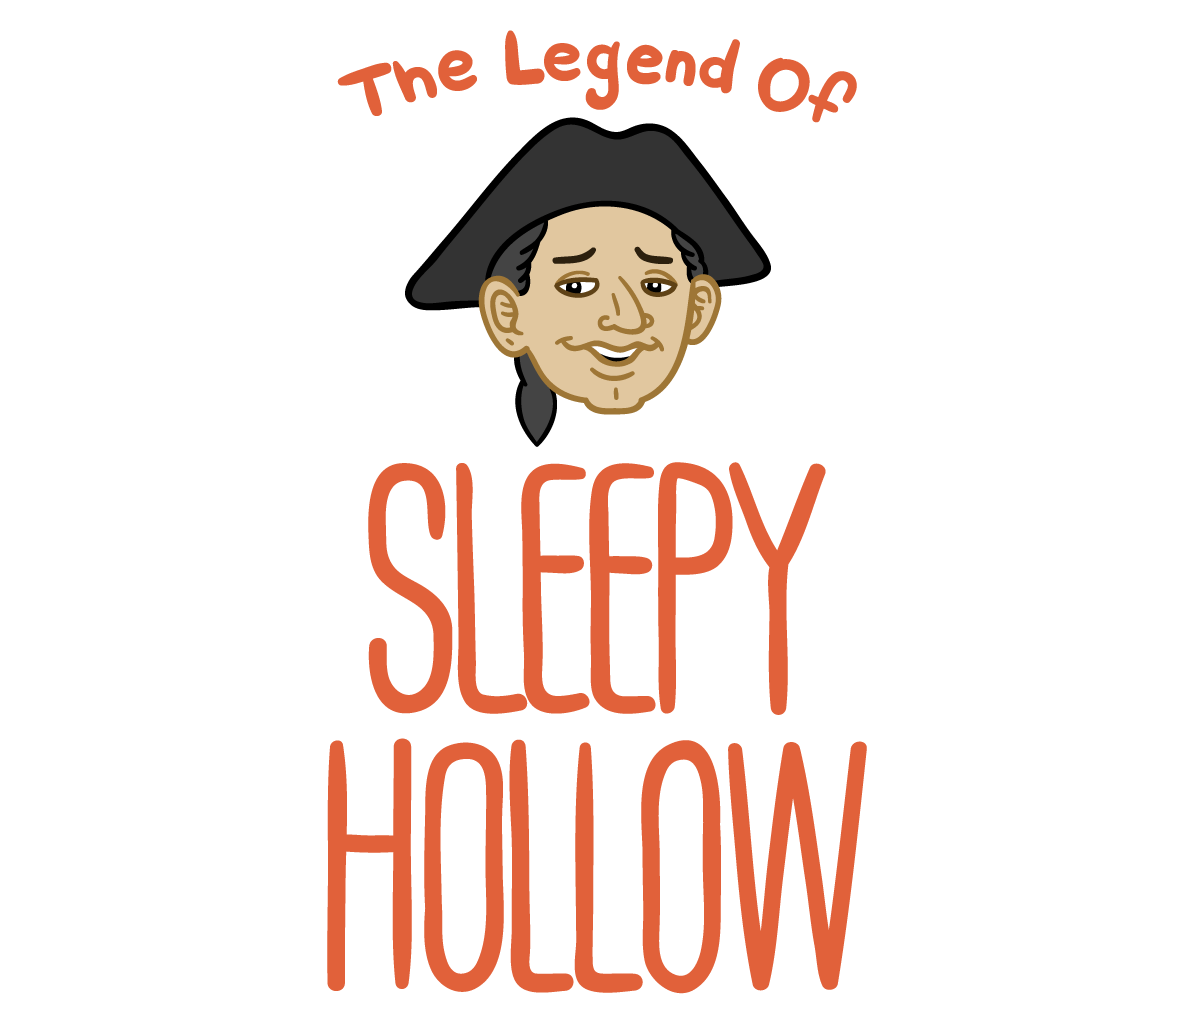 legend-of-sleepy-hollow-1980-jeff-goldblum